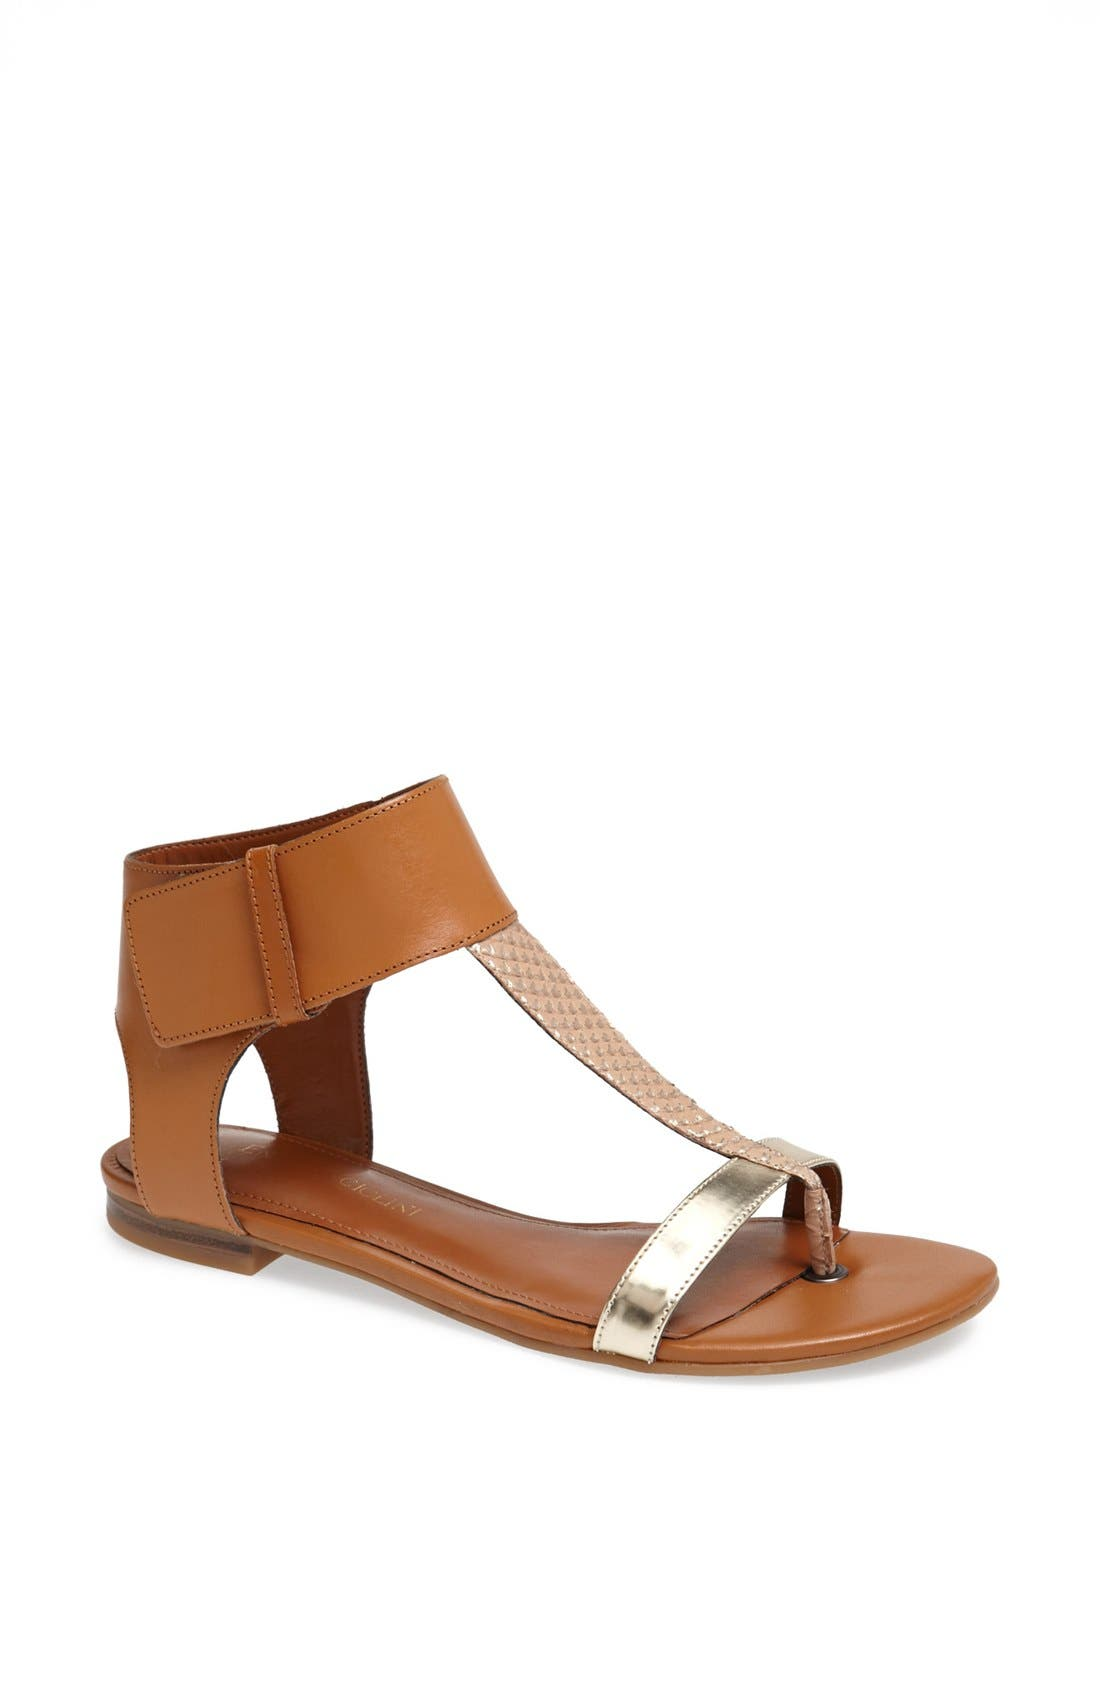 Alternate Image 1 Selected - Enzo Angiolini 'Tilah' Thong Sandal